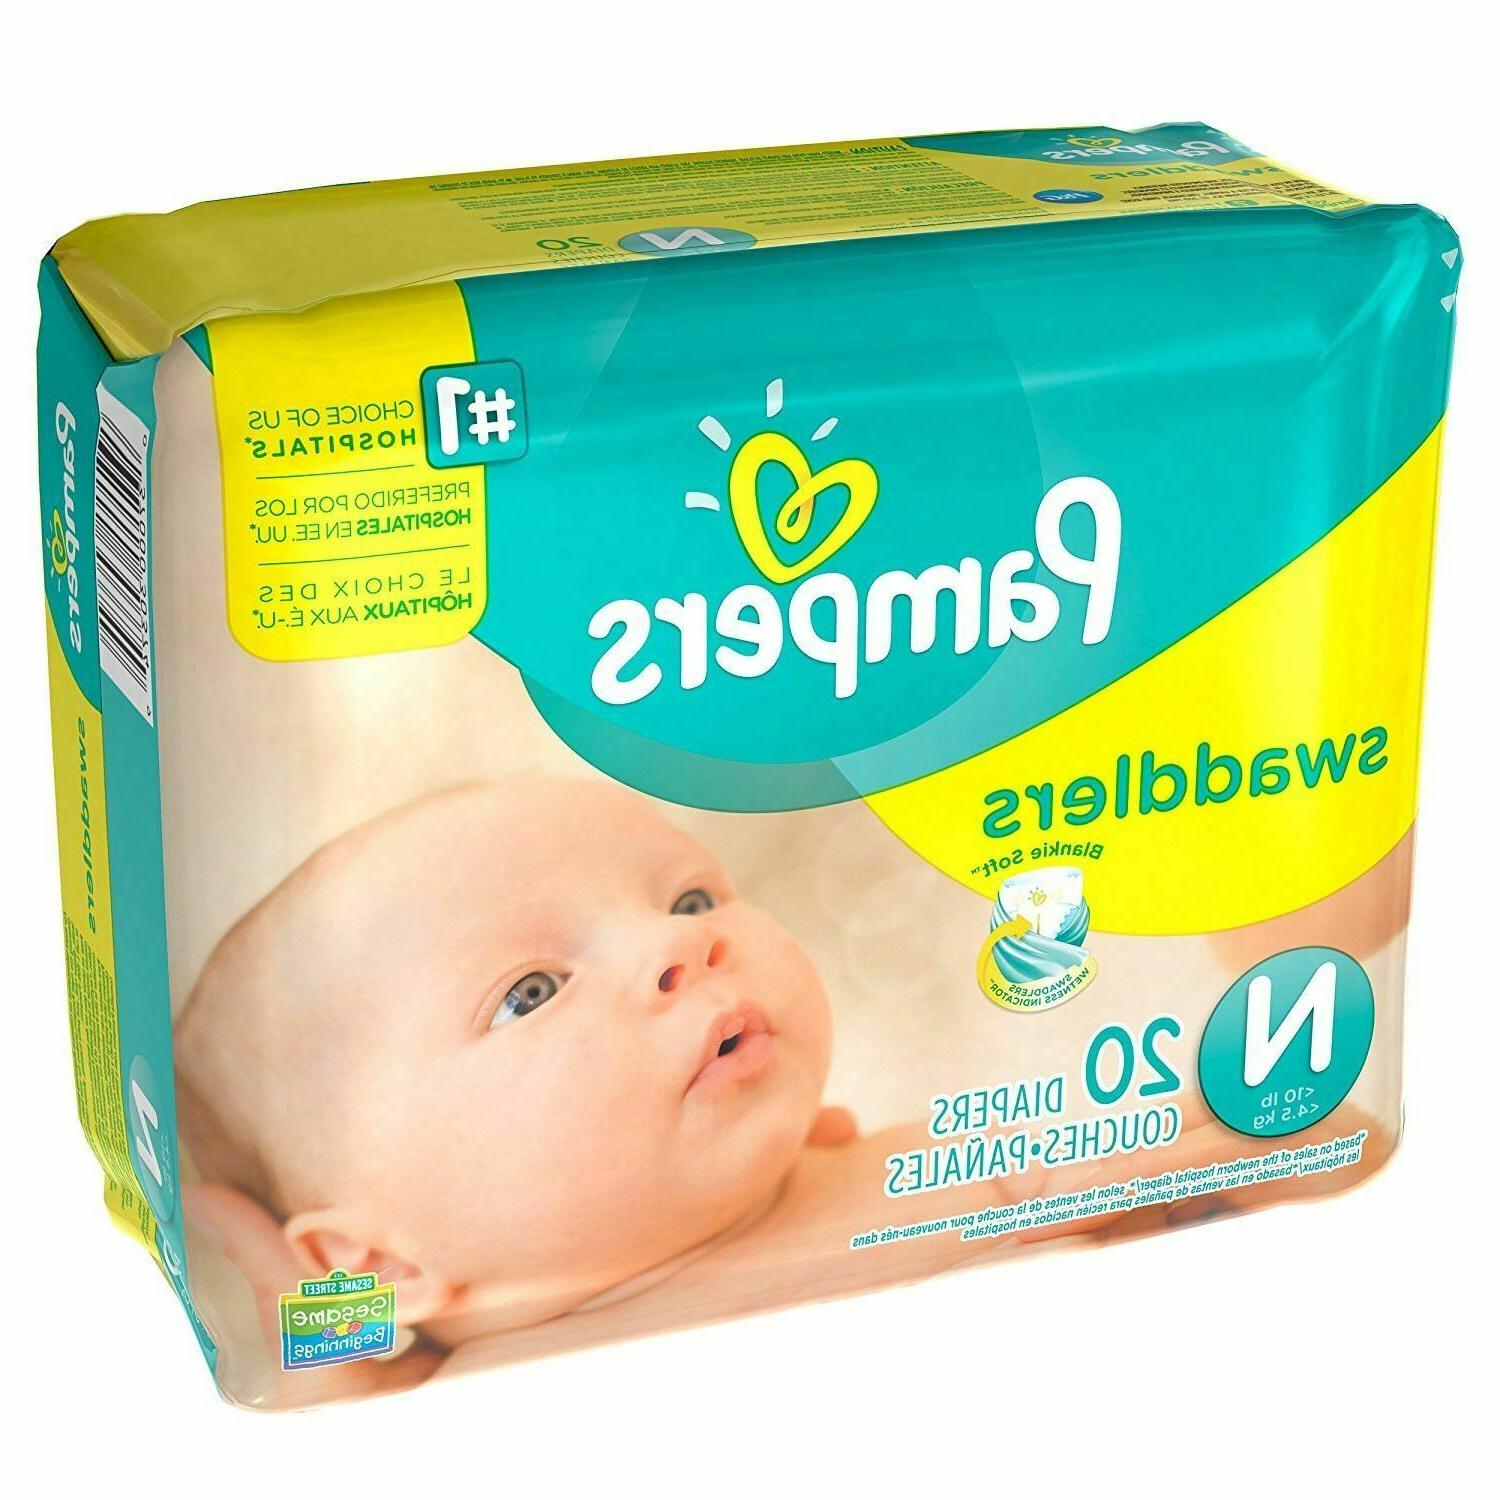 20 Count Pampers Swaddlers Diapers Newborn Up to 10 lbs.